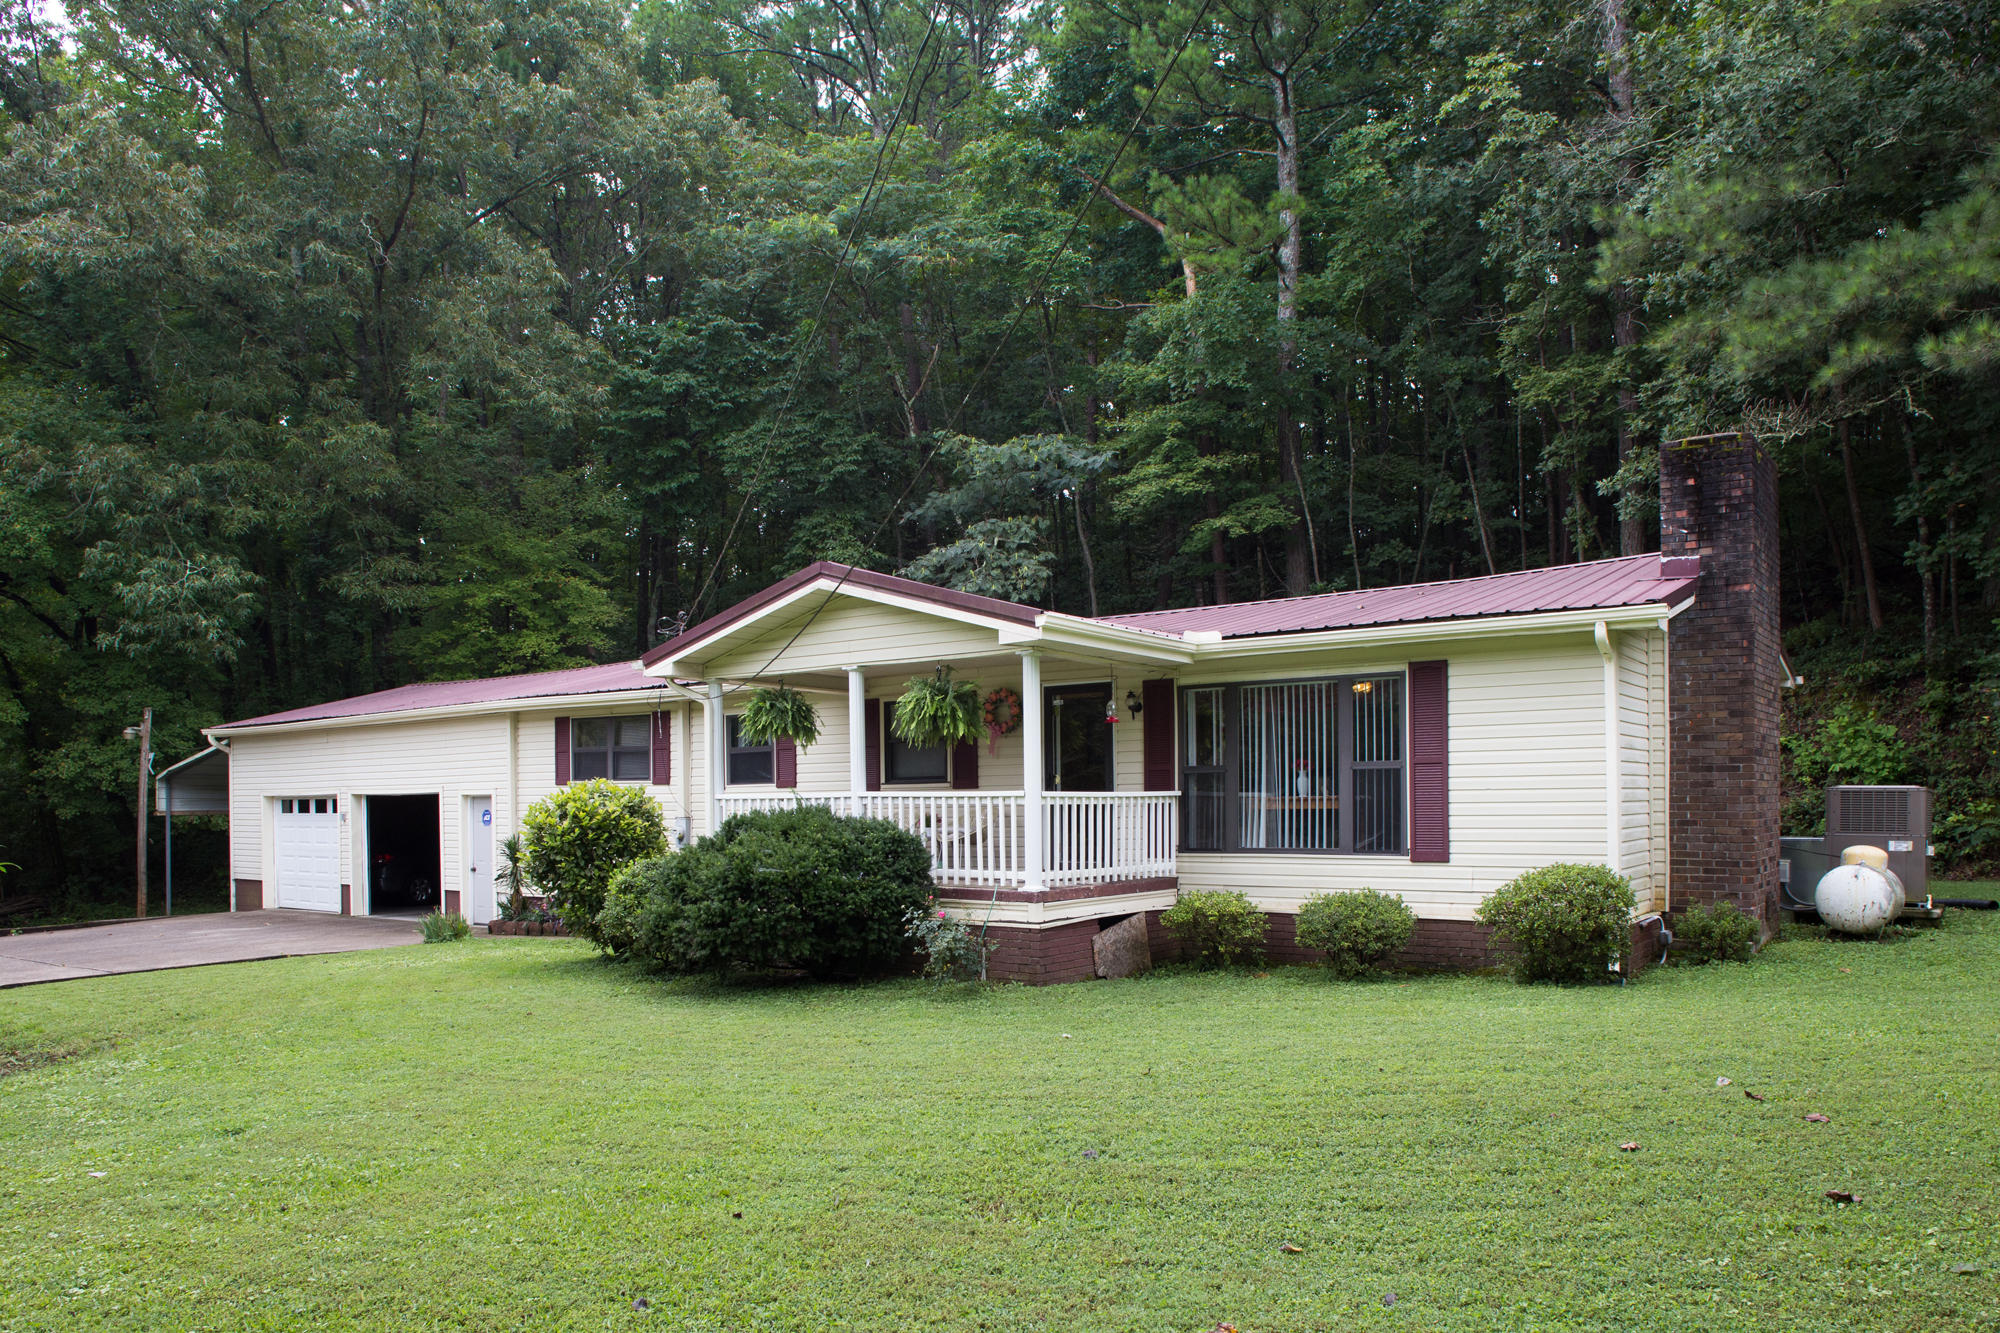 2149 N Long Hollow Rd, Chickamauga, GA 30707